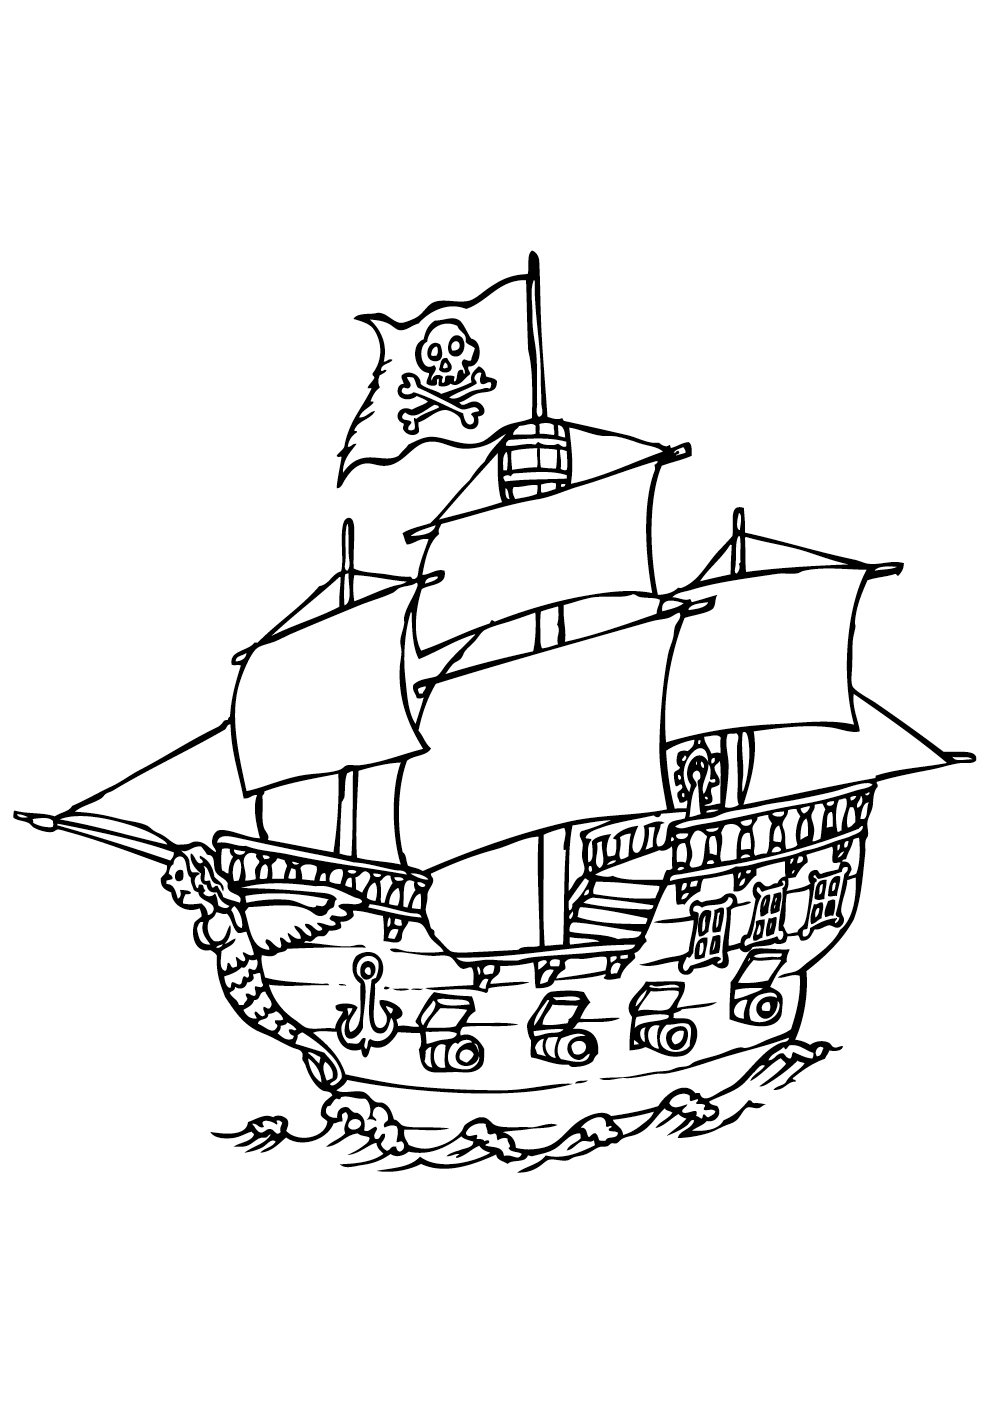 coloriage de bateaupirate